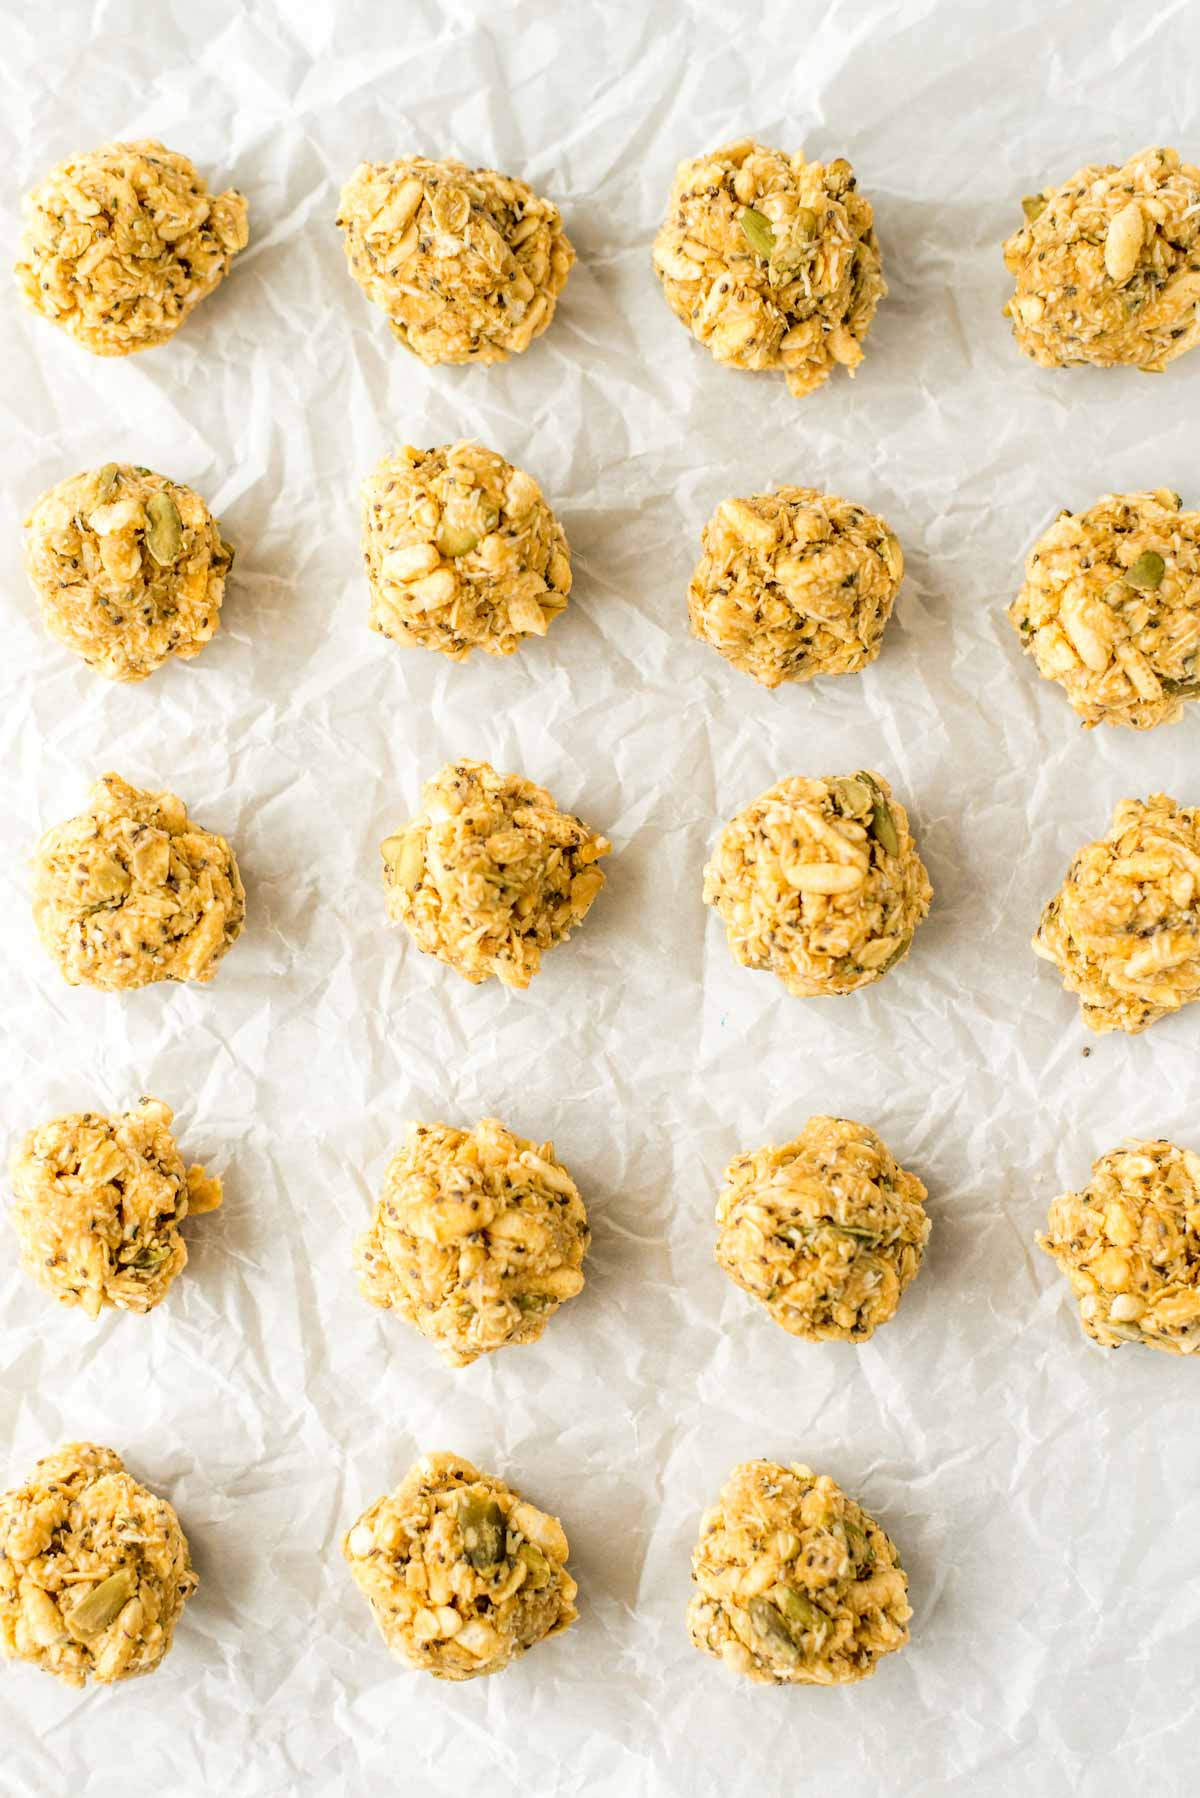 Healthy and homemade energy bites made in 10 minutes. This is the peanut butter chocolate treat you've been looking for.